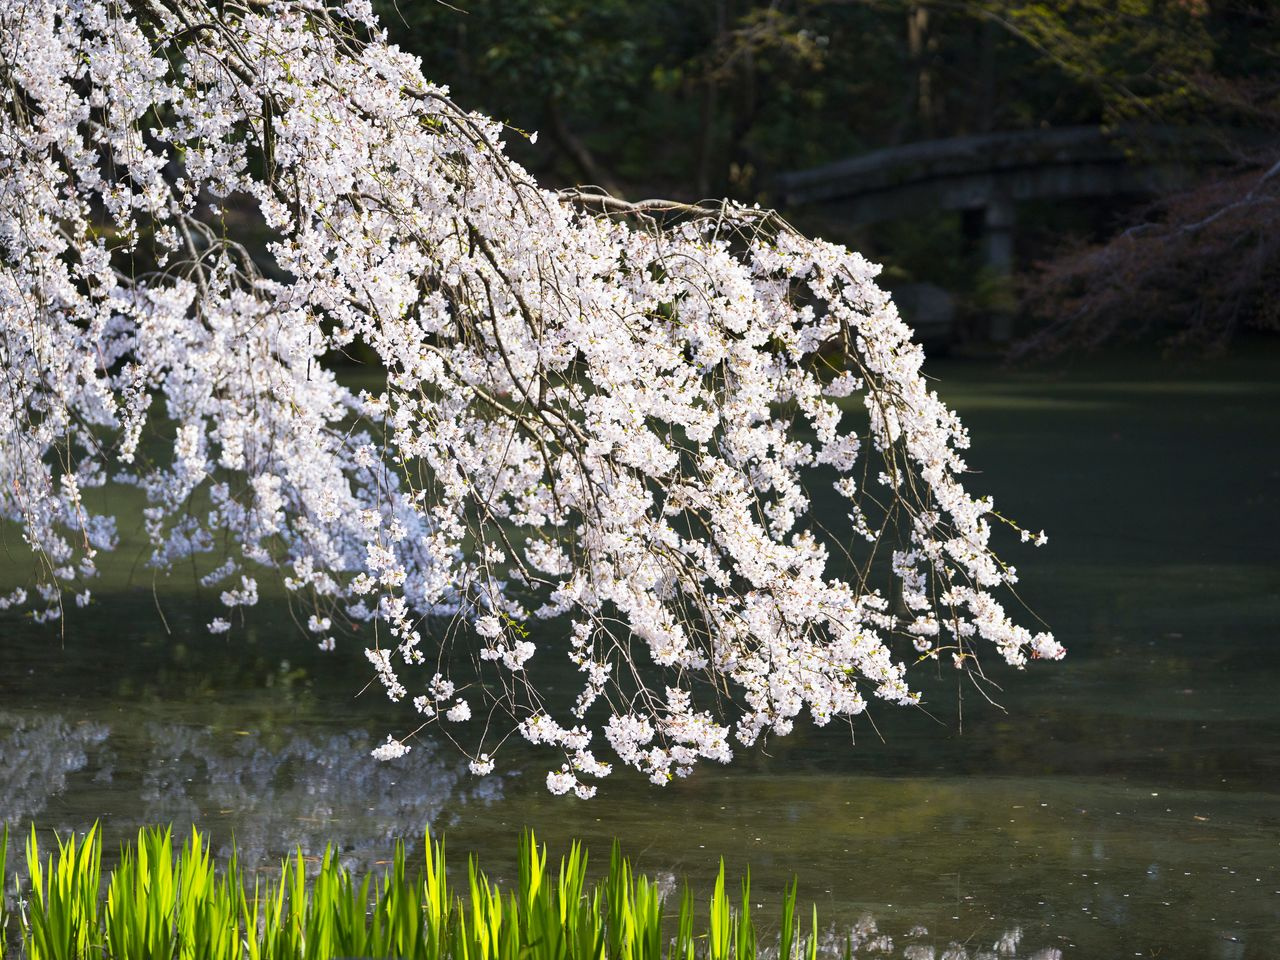 The blossoms above the Konoe pond are another lovely sight.